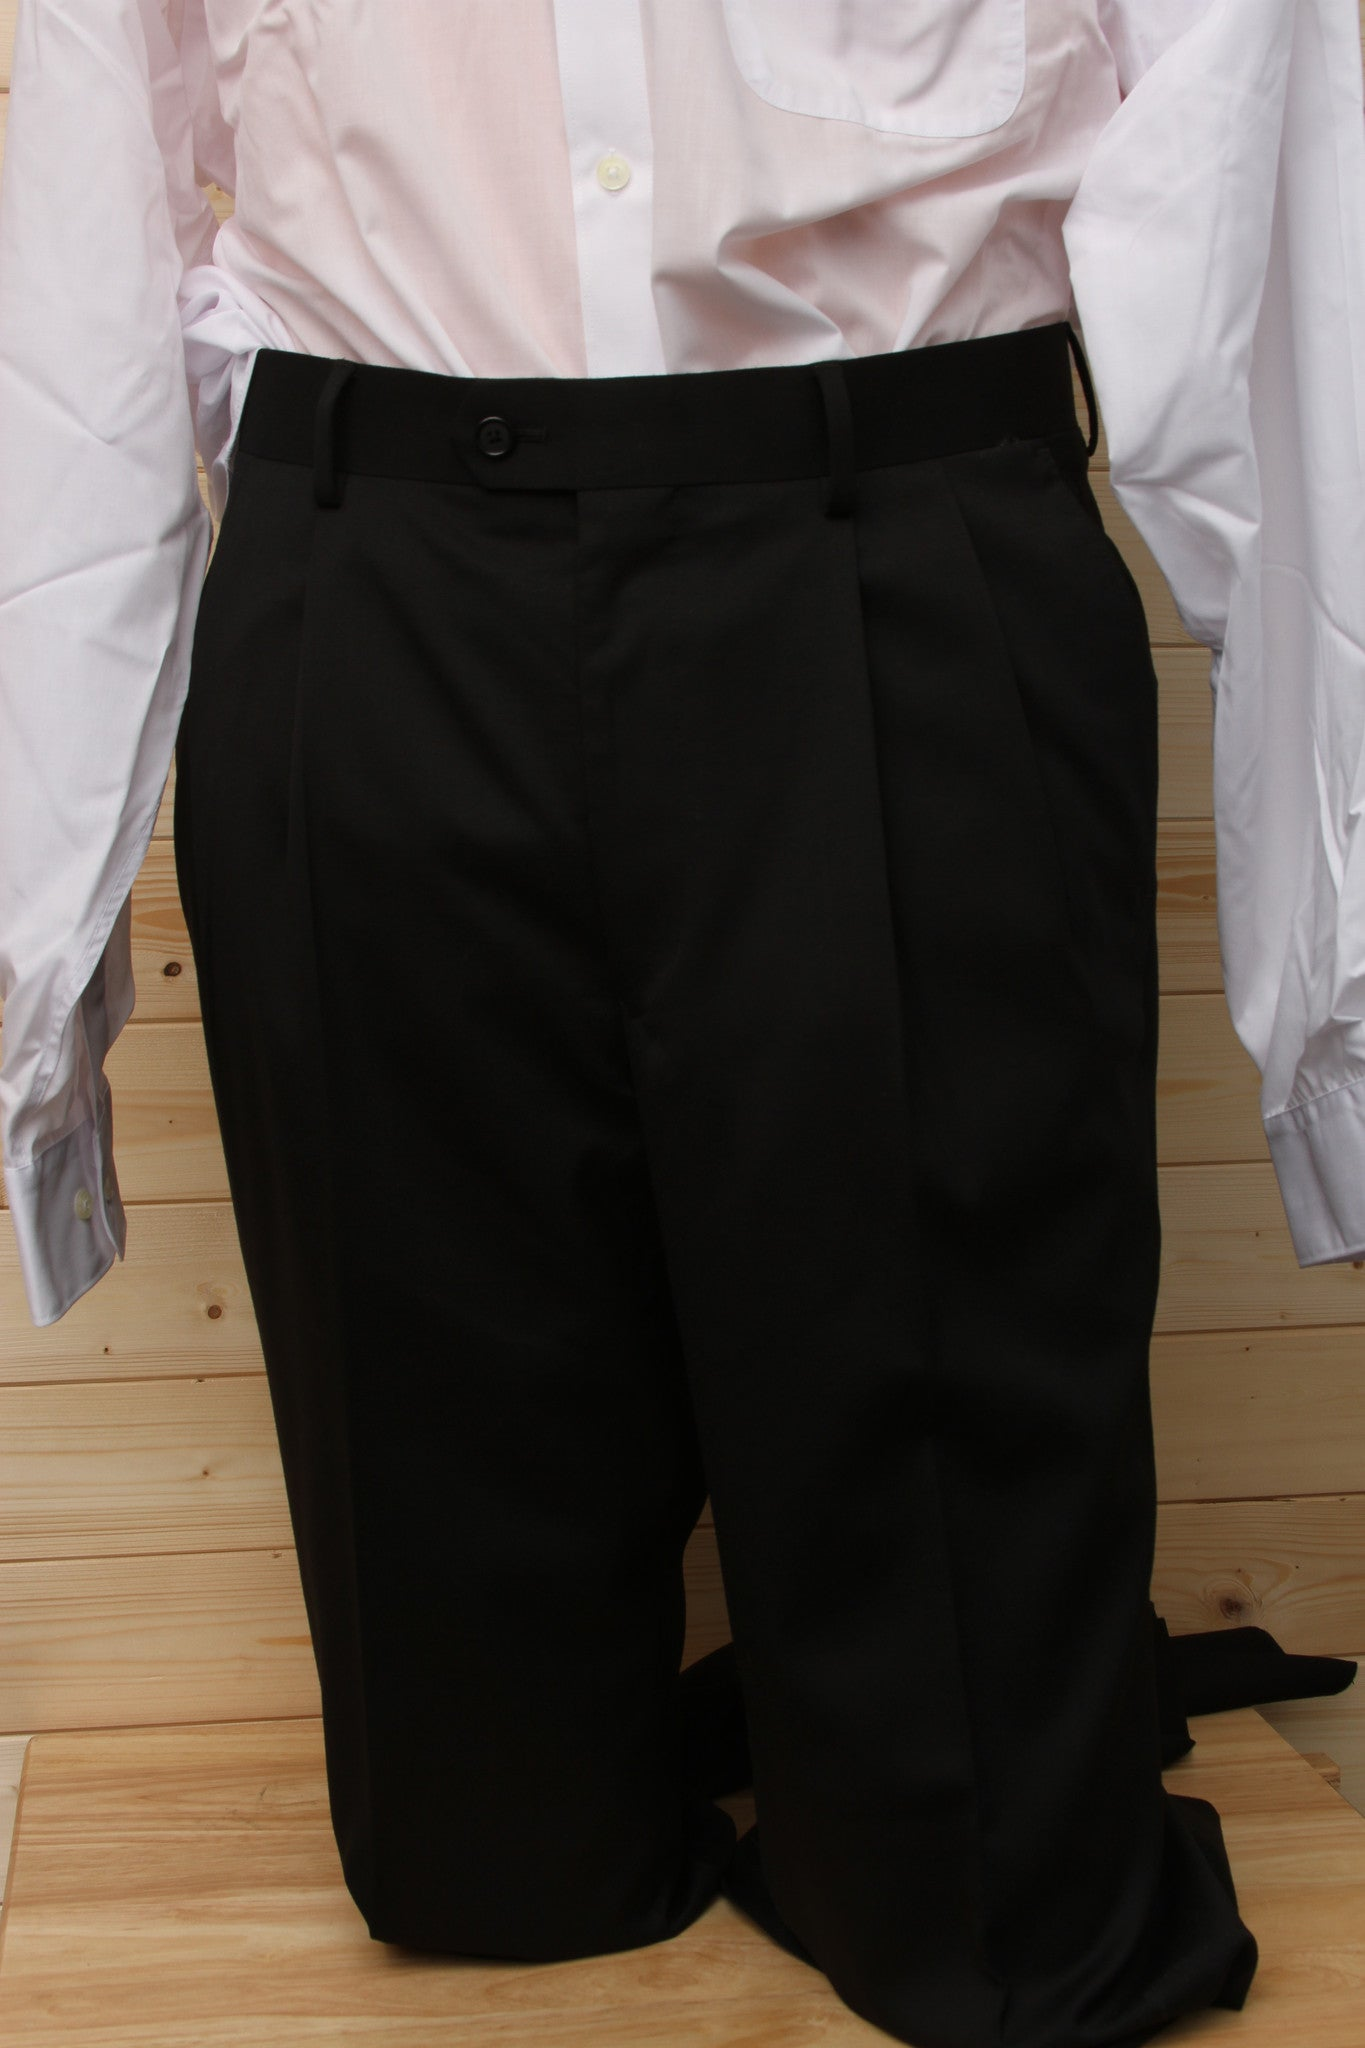 Petrocelli Wool Blend Black Suit Separate Pants at lil johns big and tall mens clothing